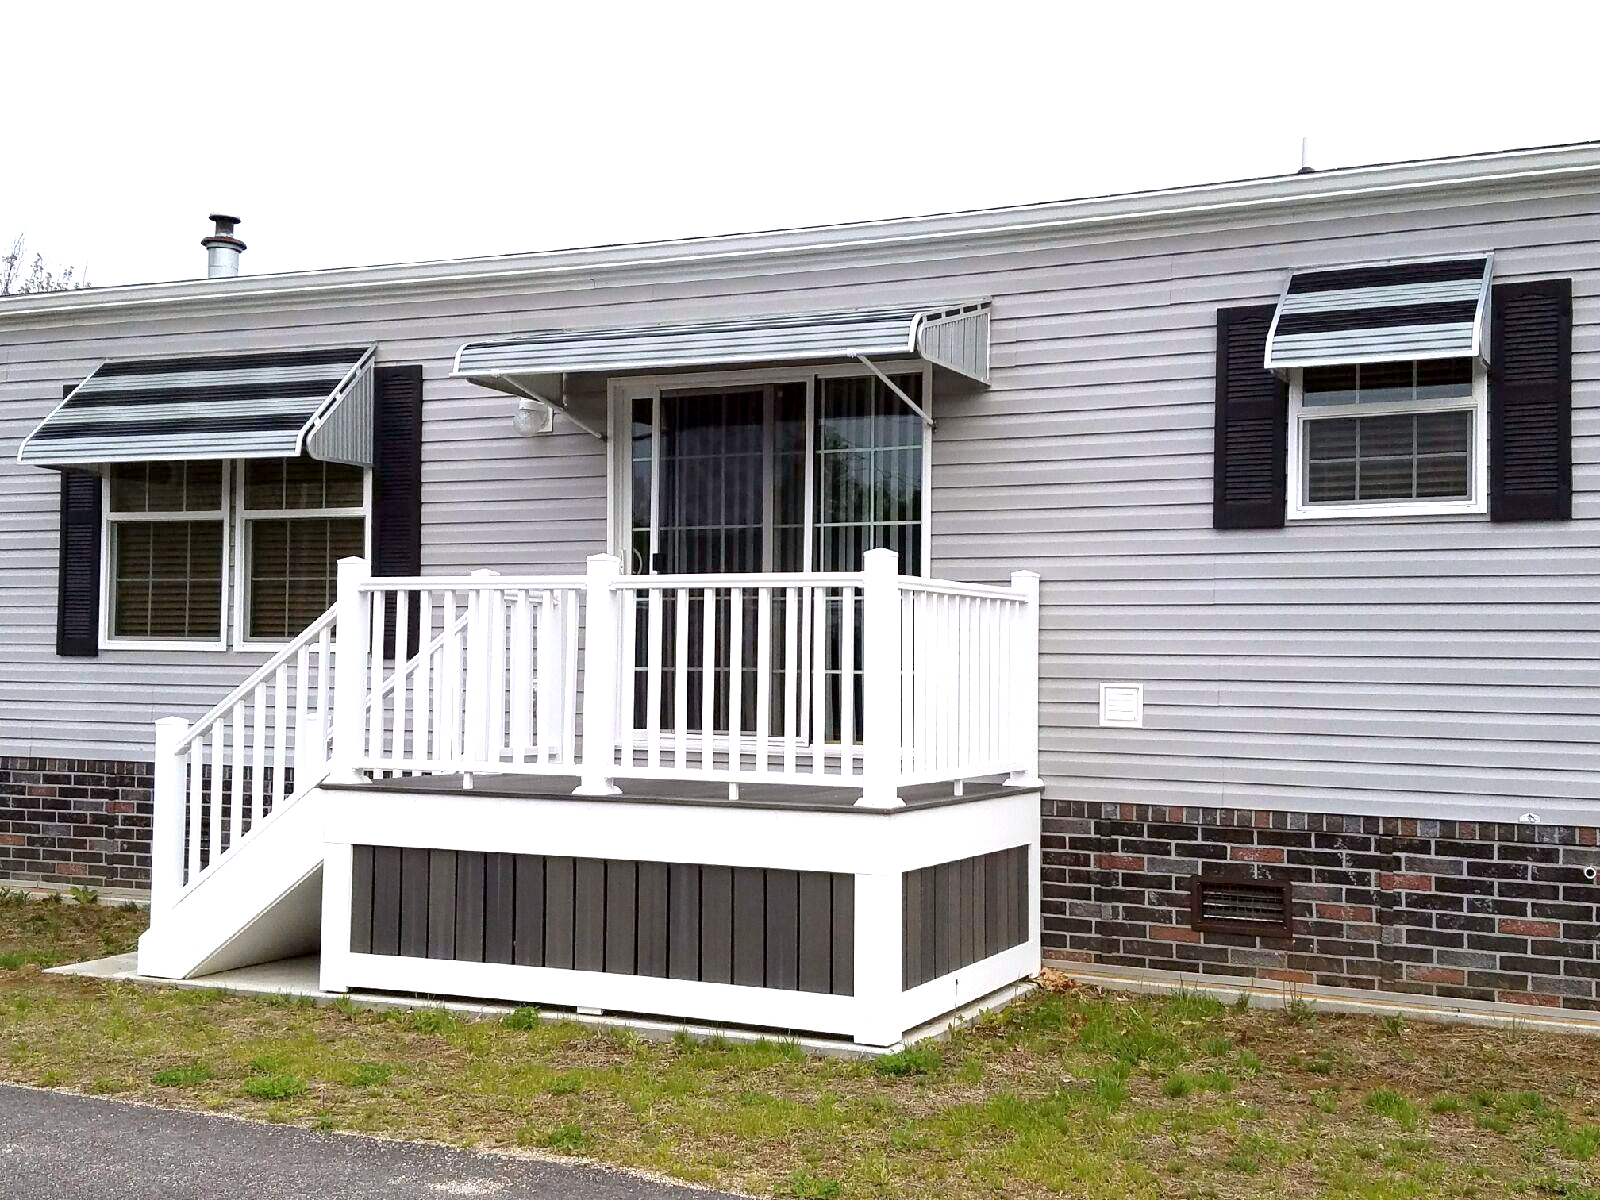 Shown Here Are Two Series 3500 Aluminum Window Awnings And A Series 1500 Aluminum Door Canopy By Nuimag Aluminum Awnings Aluminum Window Awnings Window Awnings